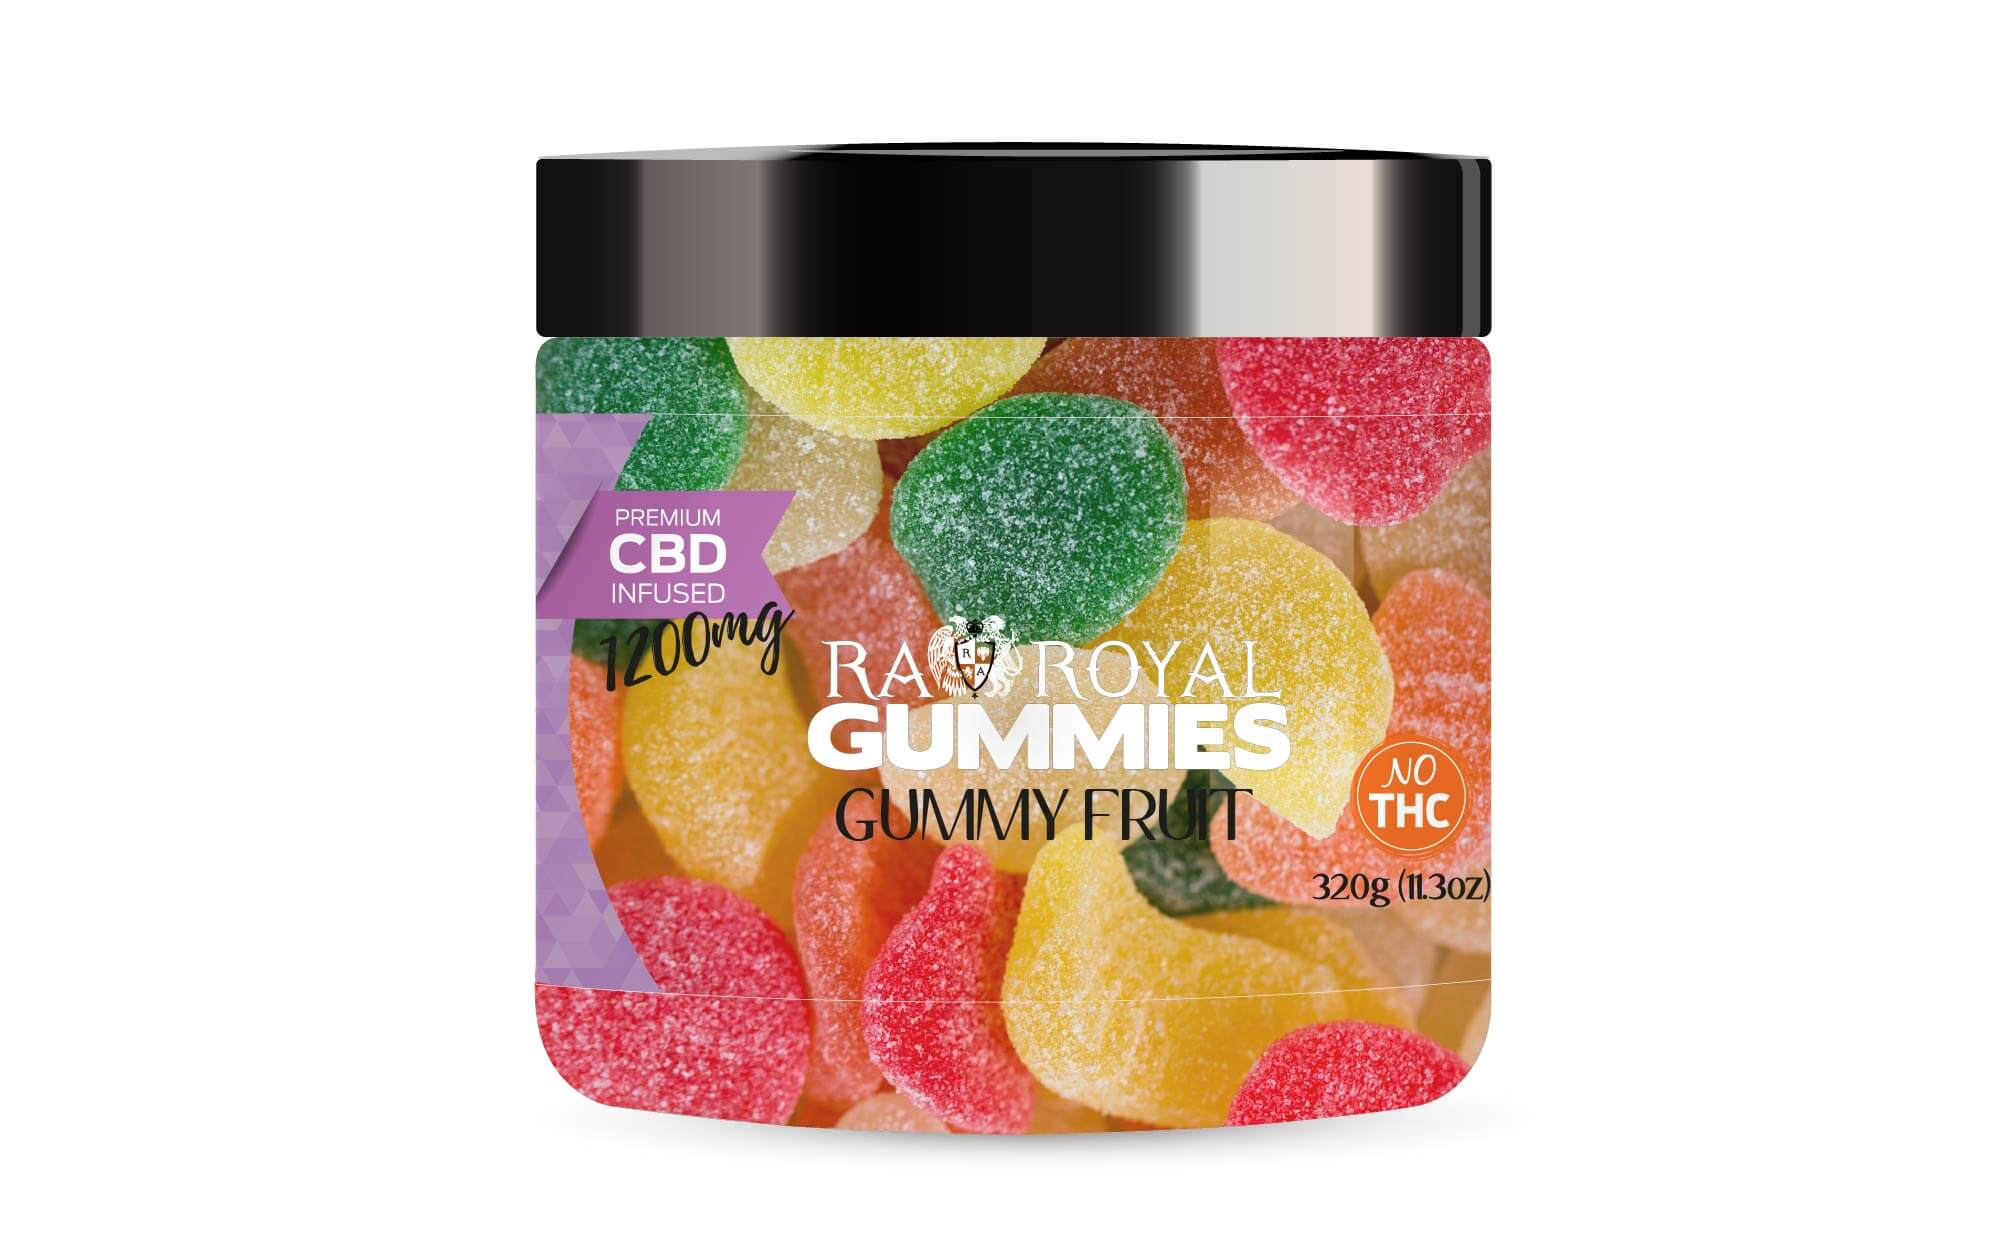 About Royal CBD Gummies